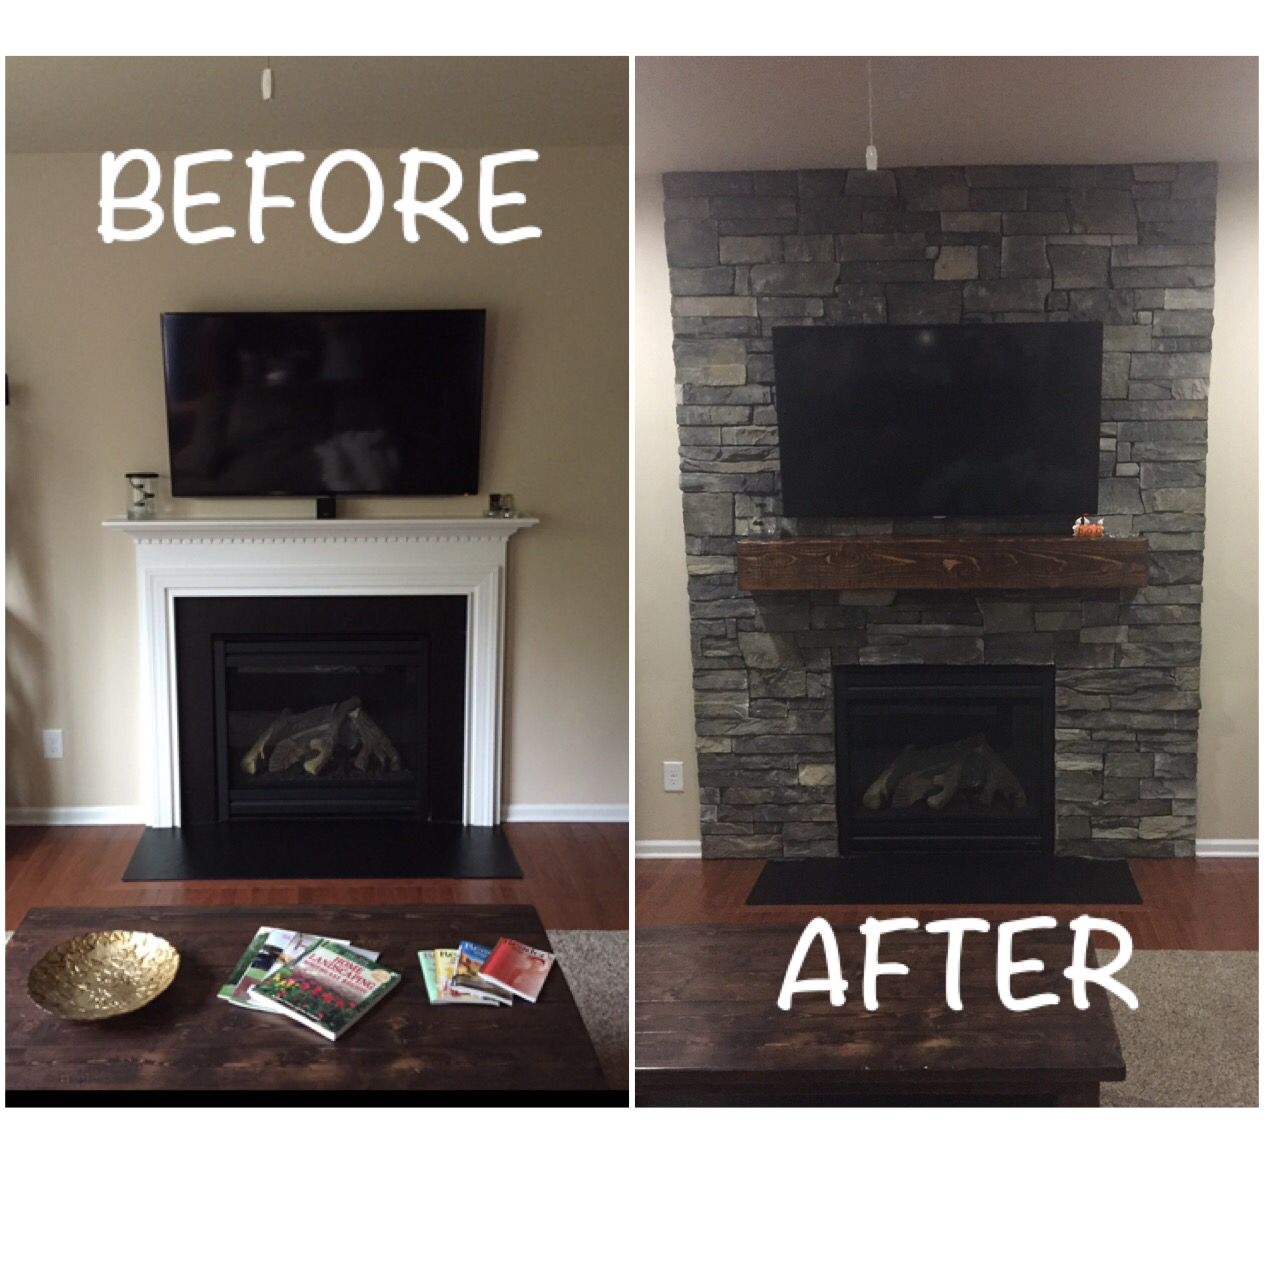 rsf opel 2 wood fireplace with boston blend ledge stone and cedar